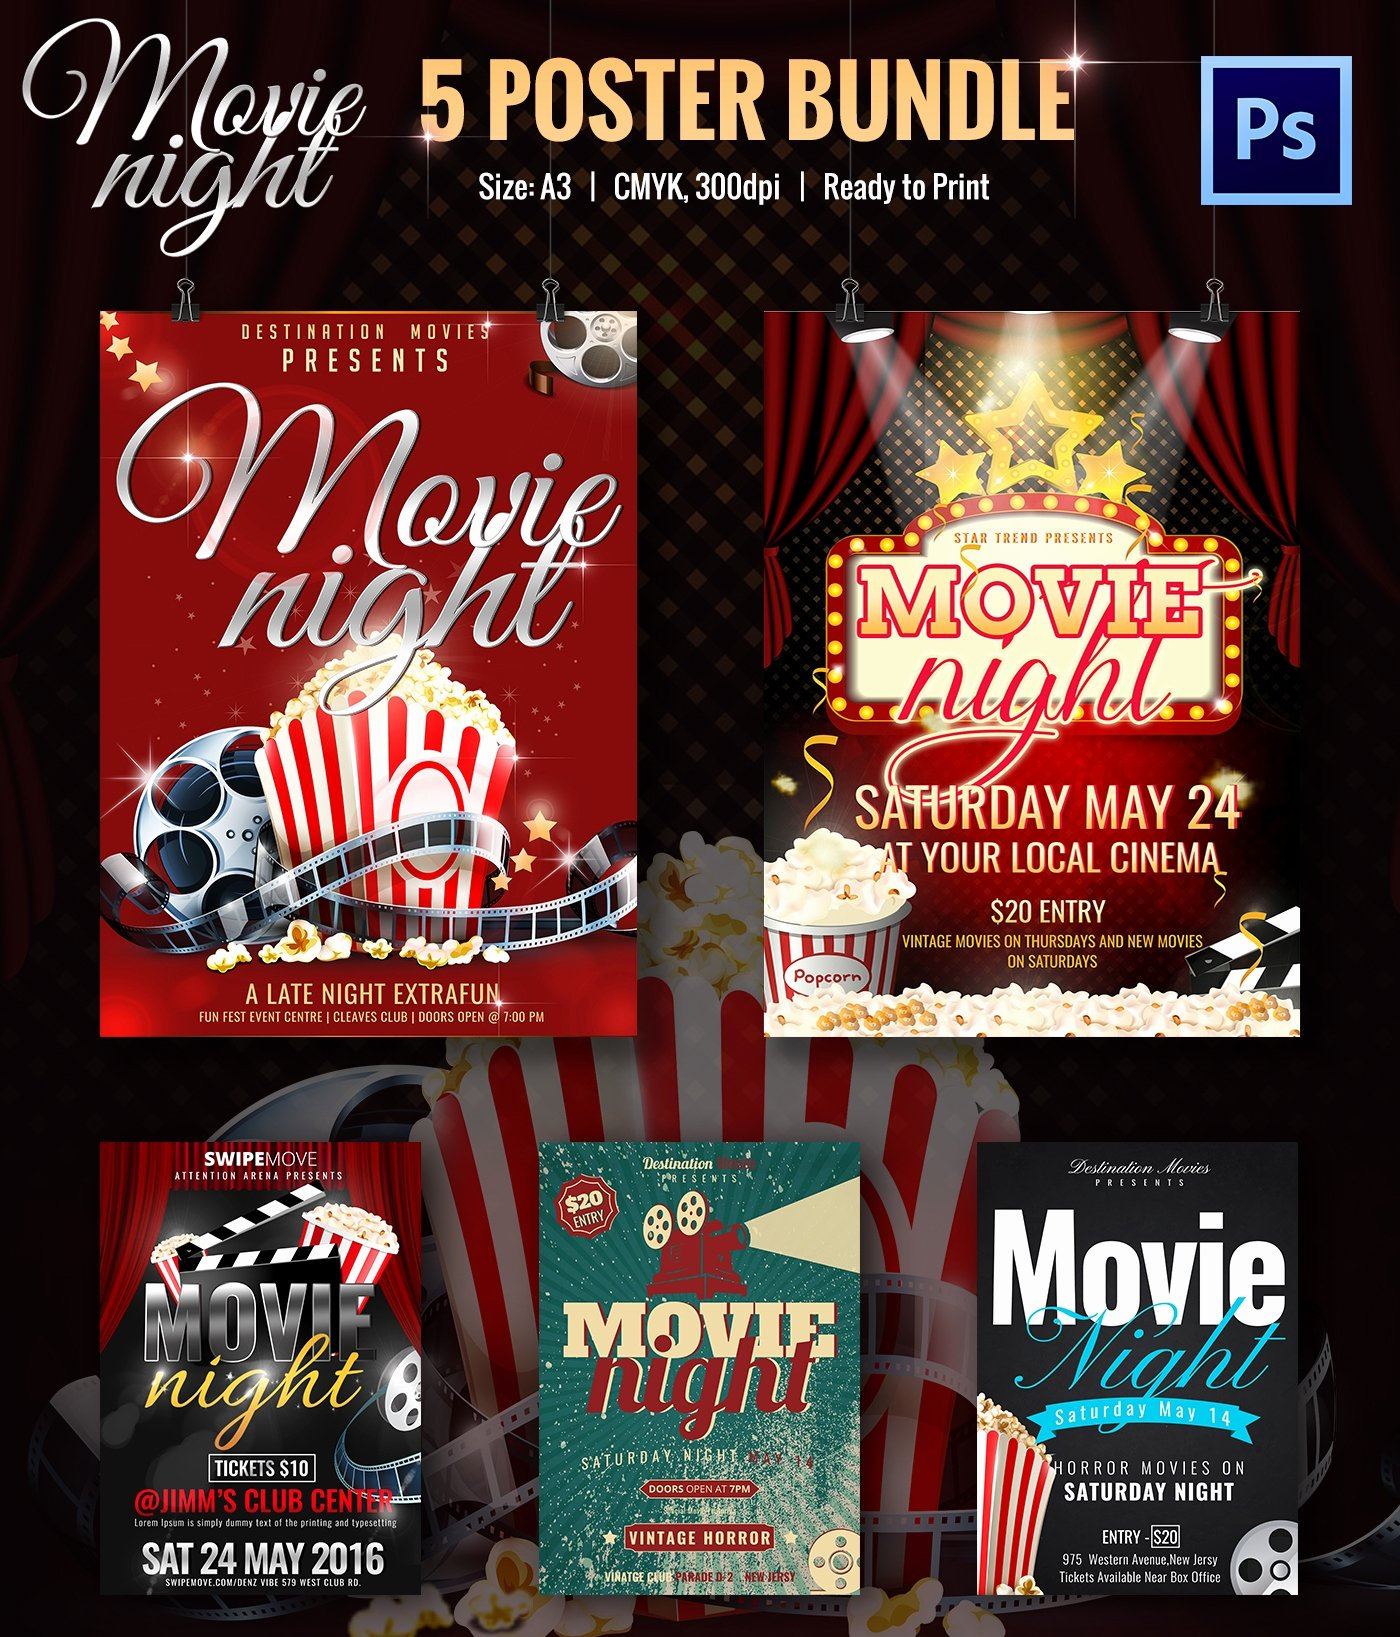 Free Movie Night Flyer Template Lovely Movie Night Flyer Template 25 Free Jpg Psd format